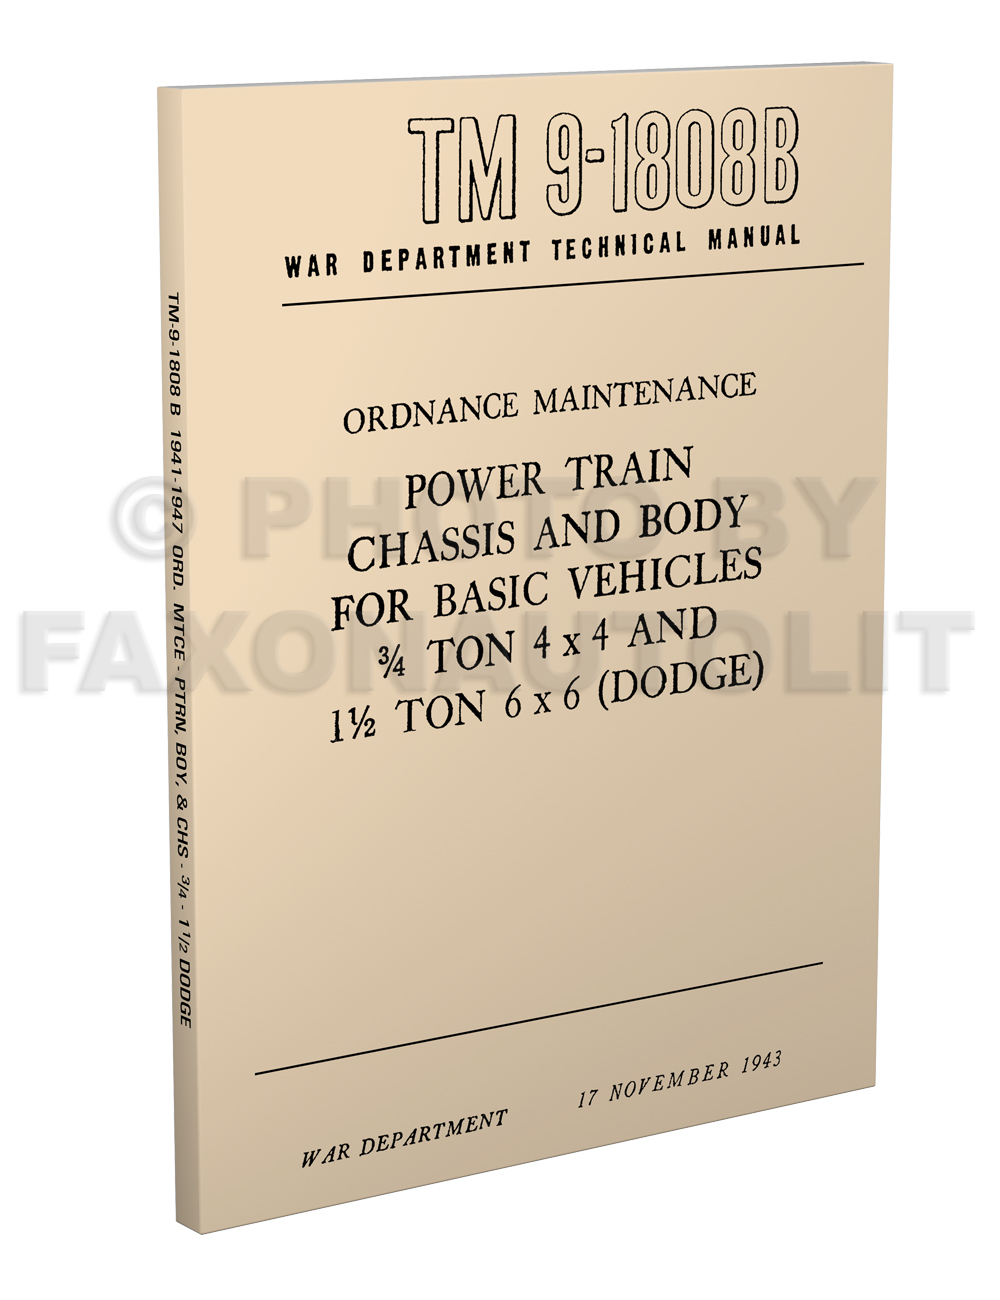 1941-1947 Dodge Military WC ¾ ton Chassis Body Overhaul Manual Reprint TM 9-1808 B